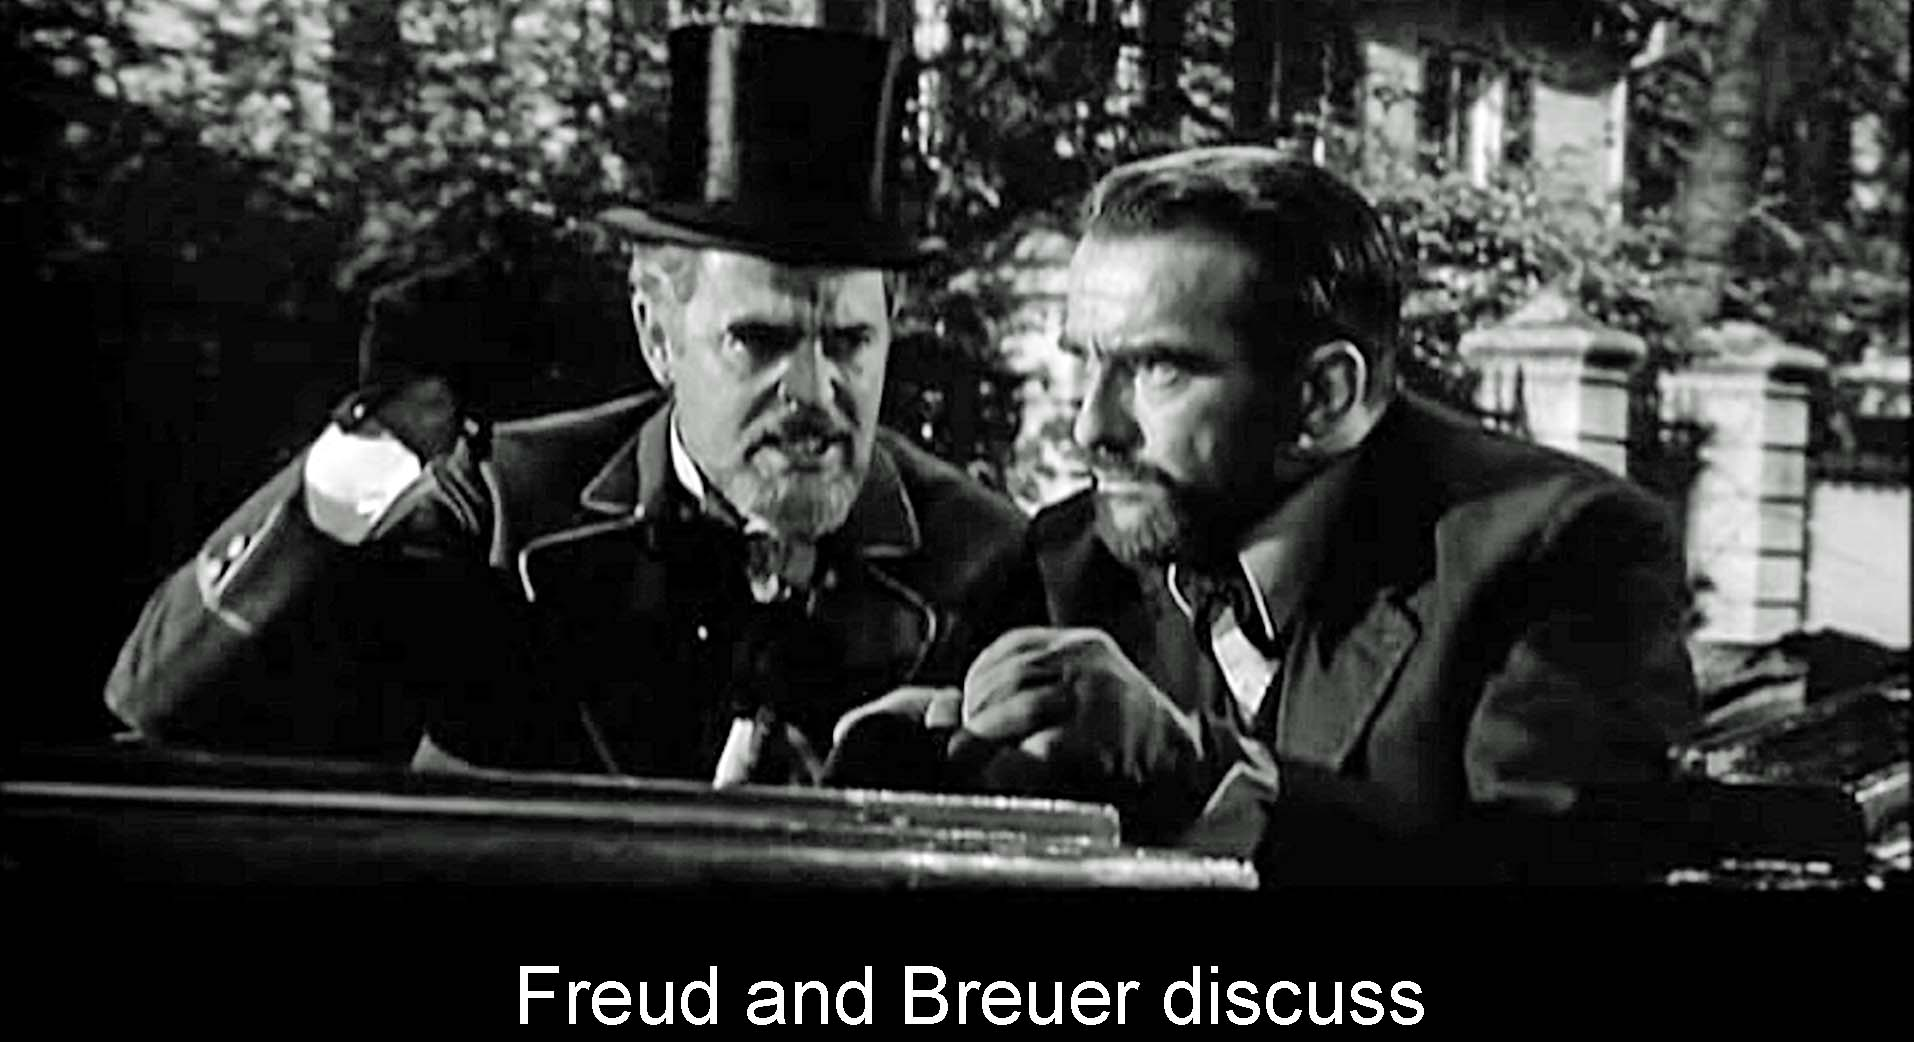 Freud and Breuer discuss